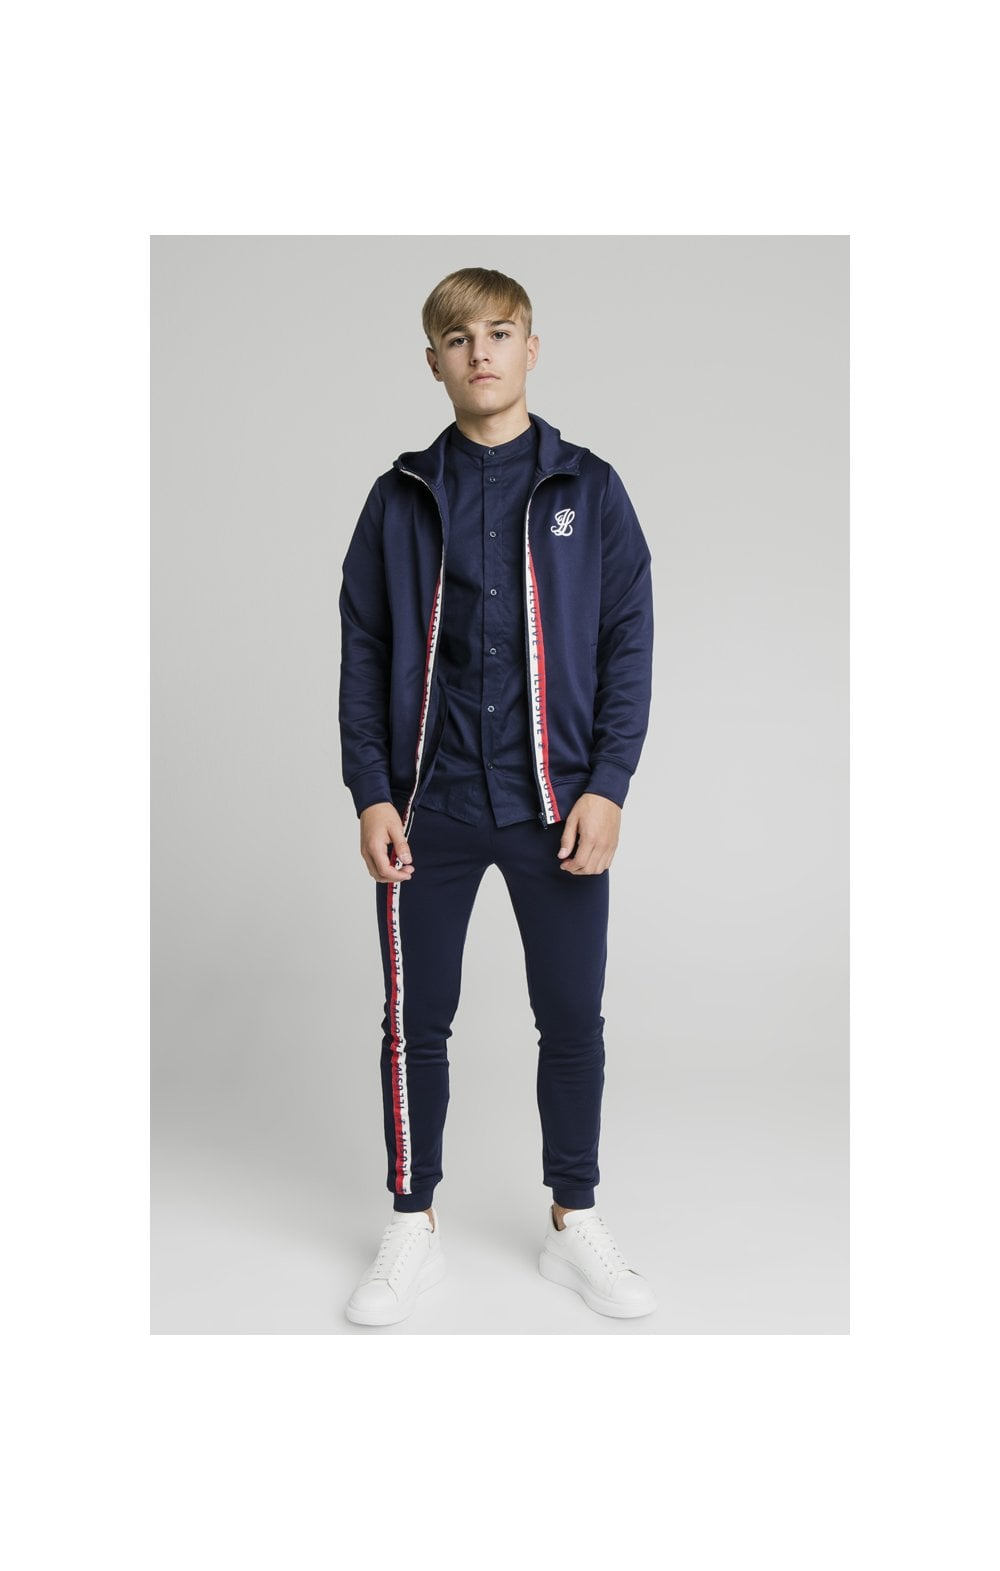 Illusive London Central Tape Zip Through Hoodie - Navy (2)